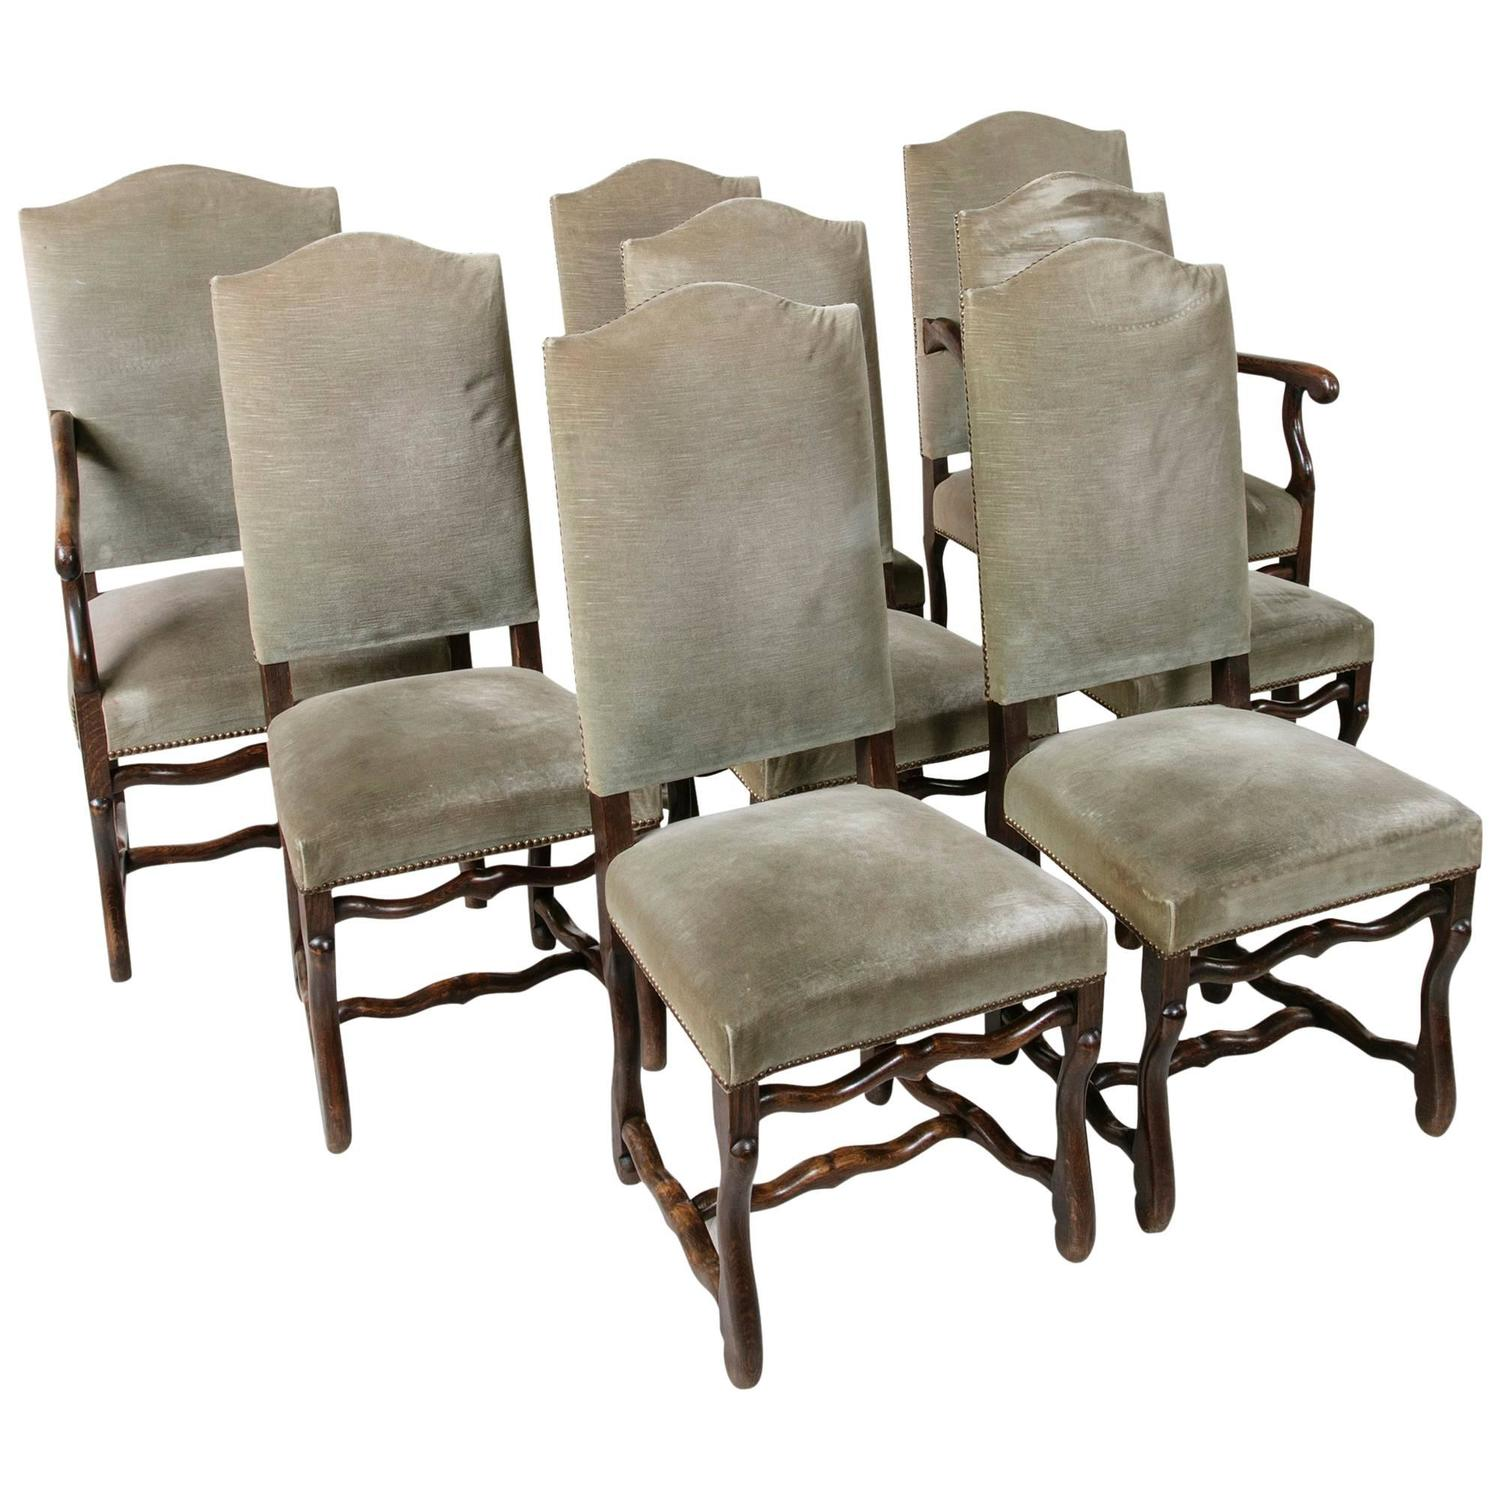 louis xiii dining room chairs 25 for sale at 1stdibs